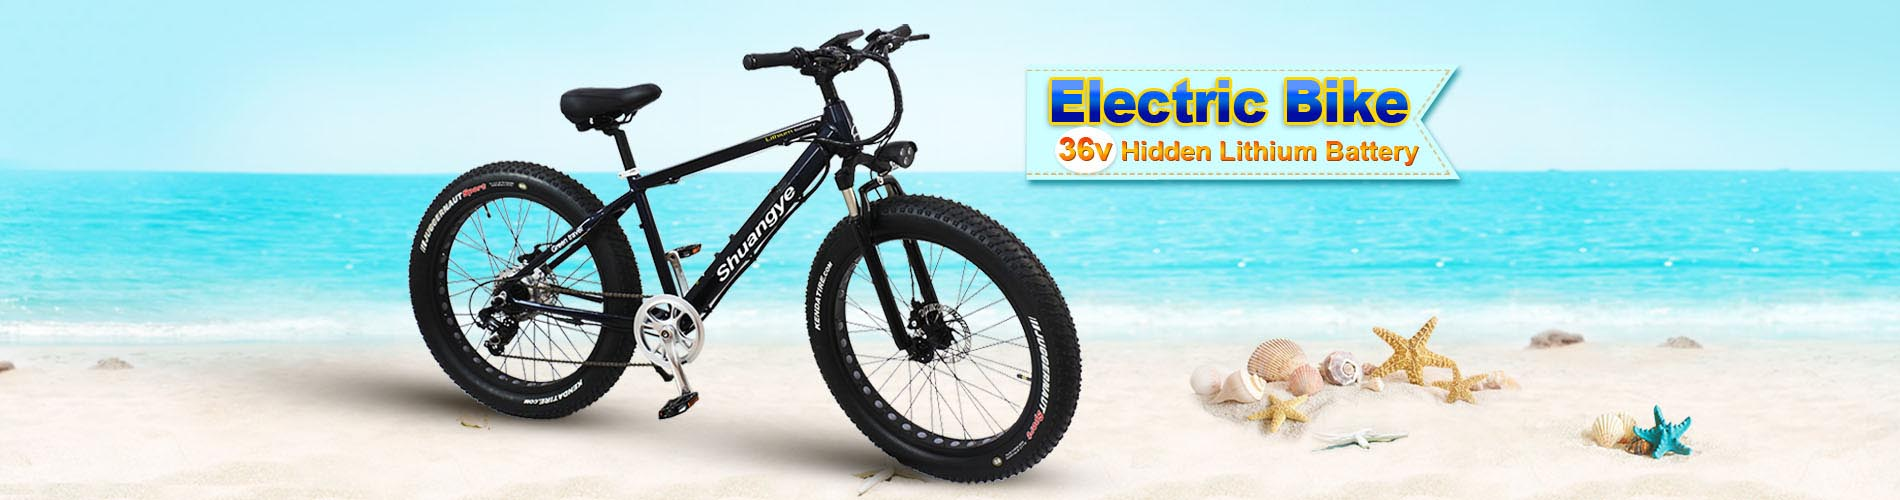 electric city bike 36v green power battery